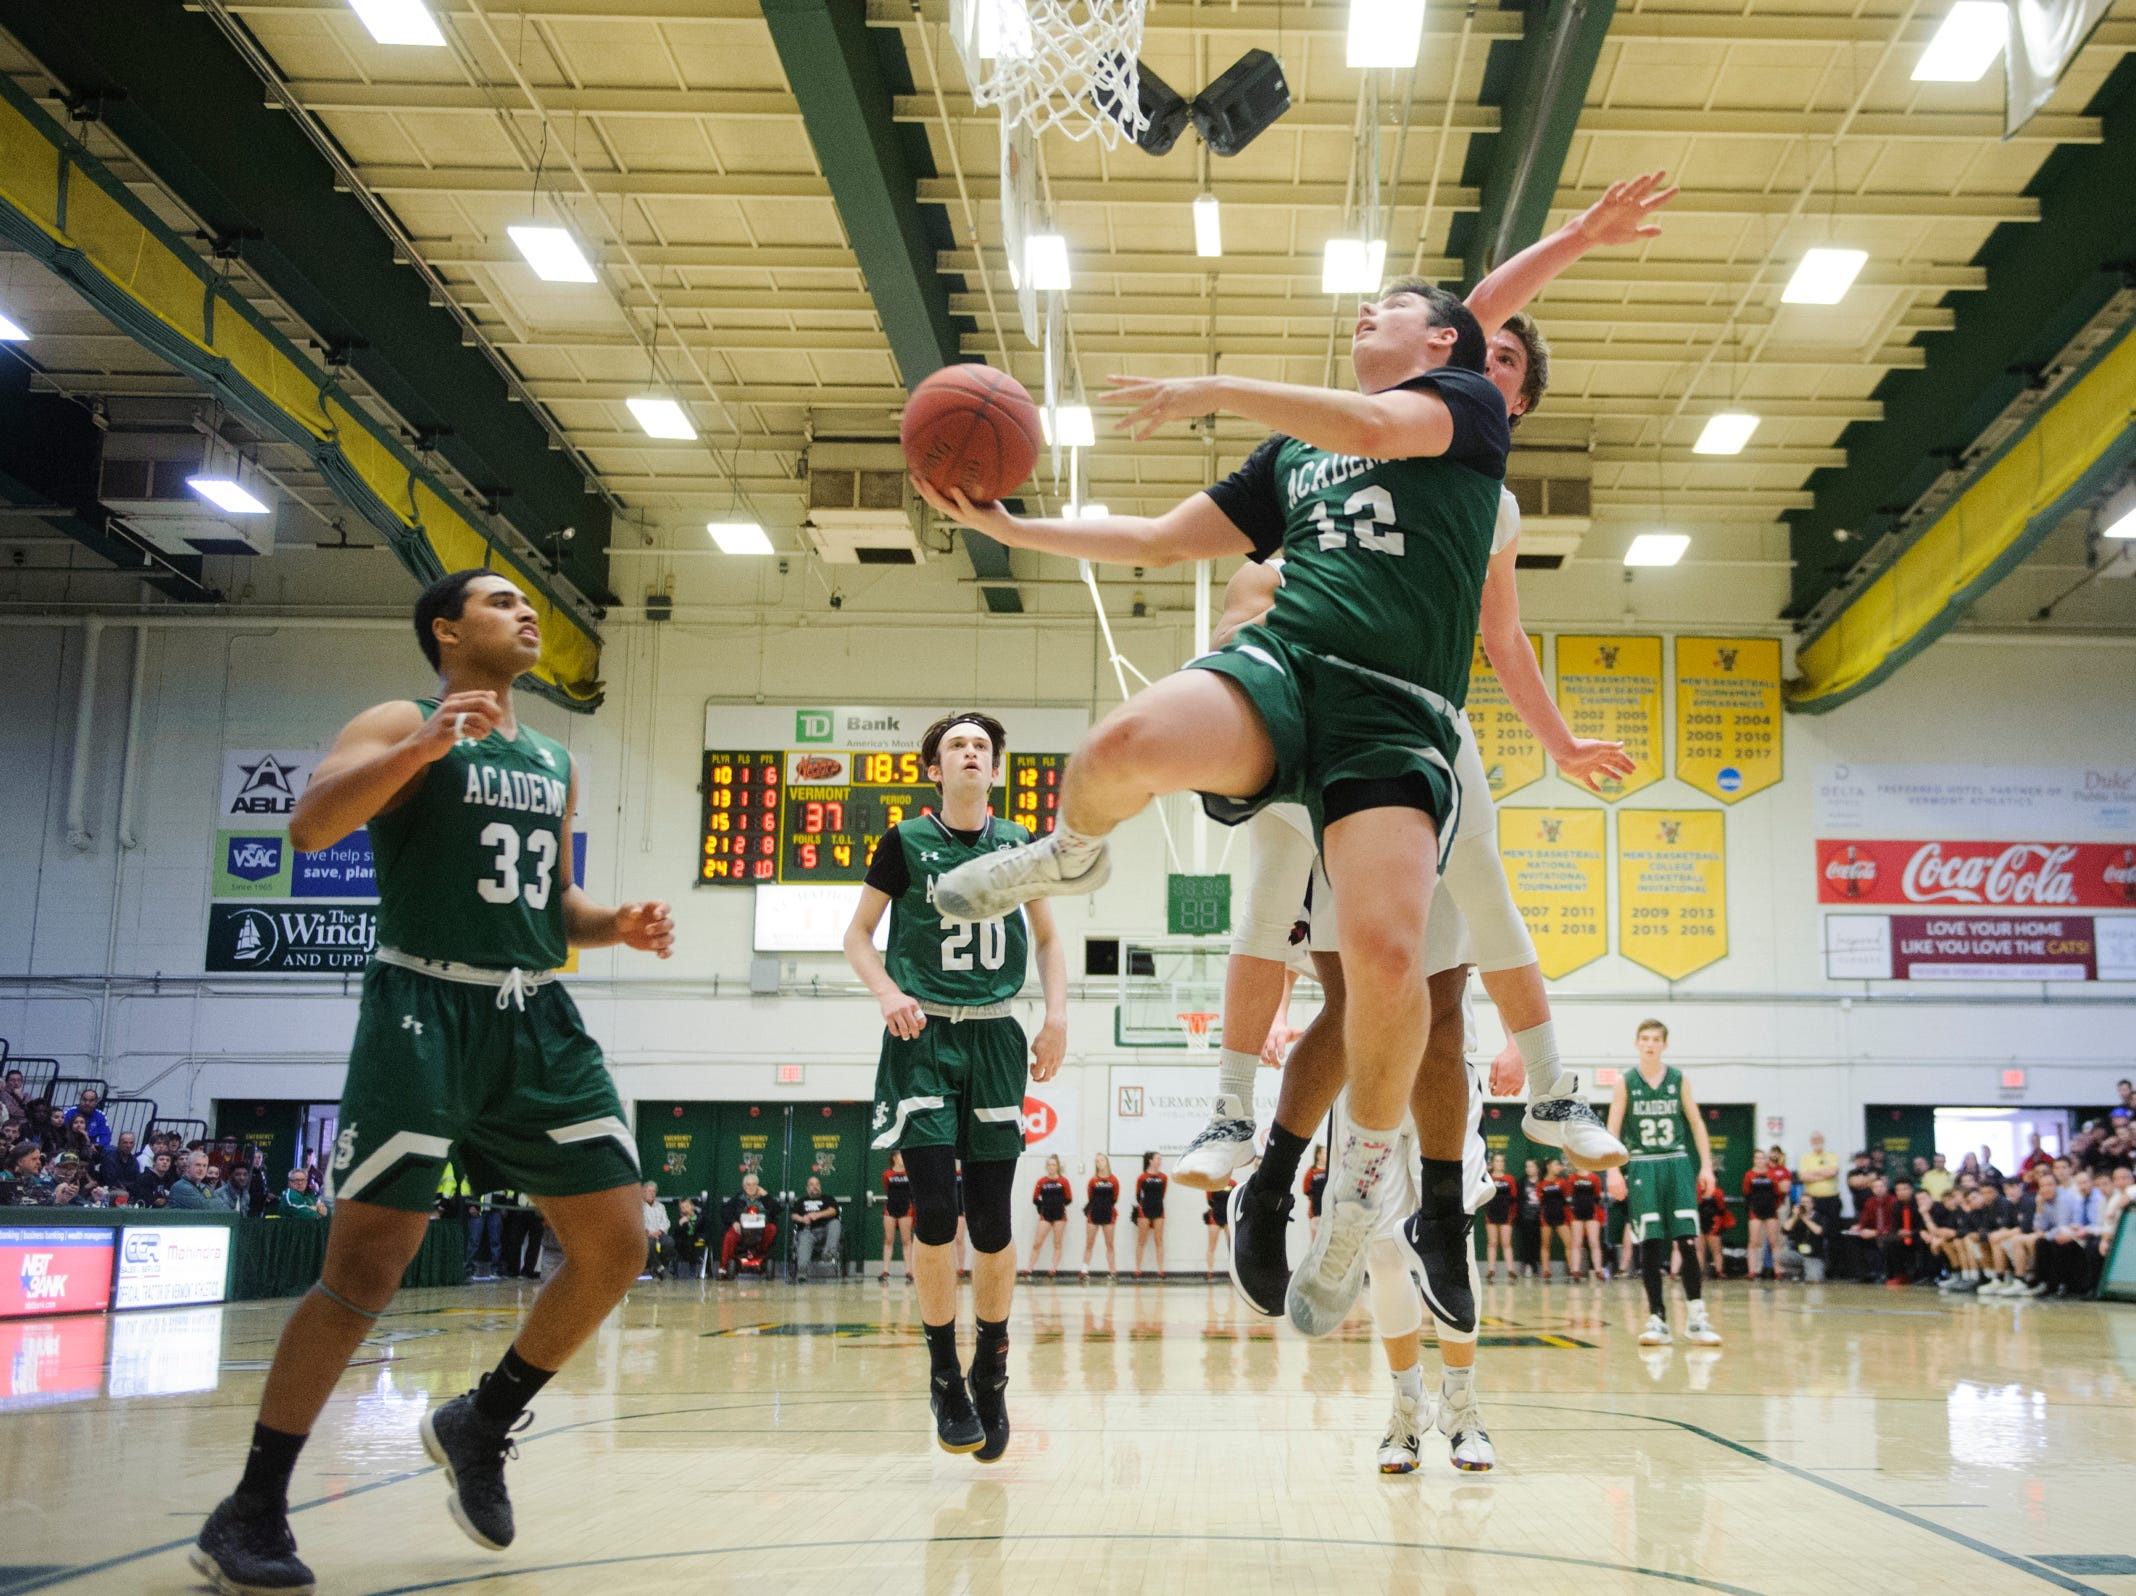 St. Johnsbury's Nic Guckin (12) leaps for a lay up during the DI boys basketball championship game between the St. Johnsbury Hilltoppers and the Rutland Raiders at Patrick Gym on Sunday afternoon March 17, 2019 in Burlington, Vermont.